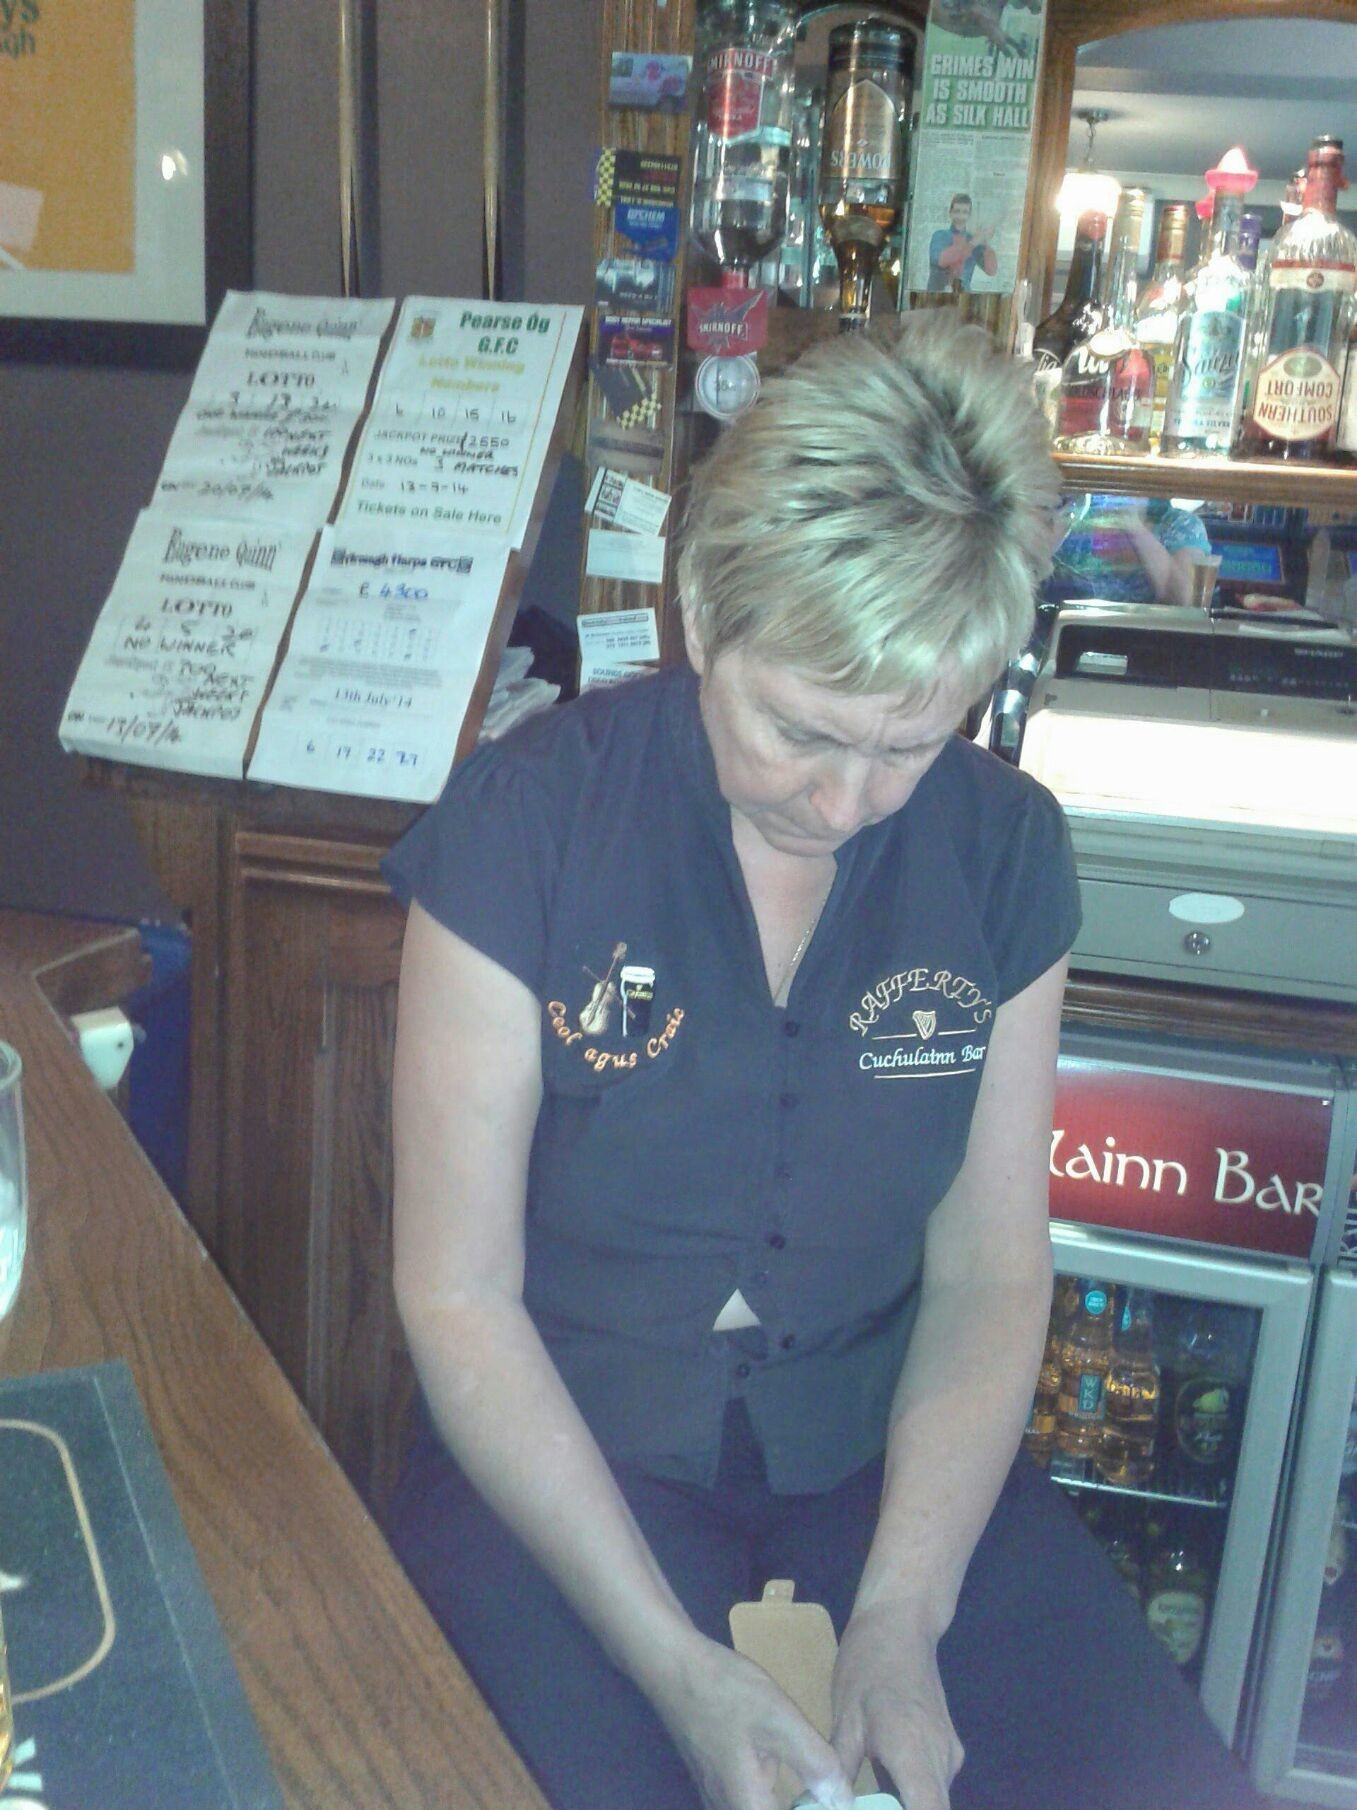 Lady mayoress of armagh hard at work lol